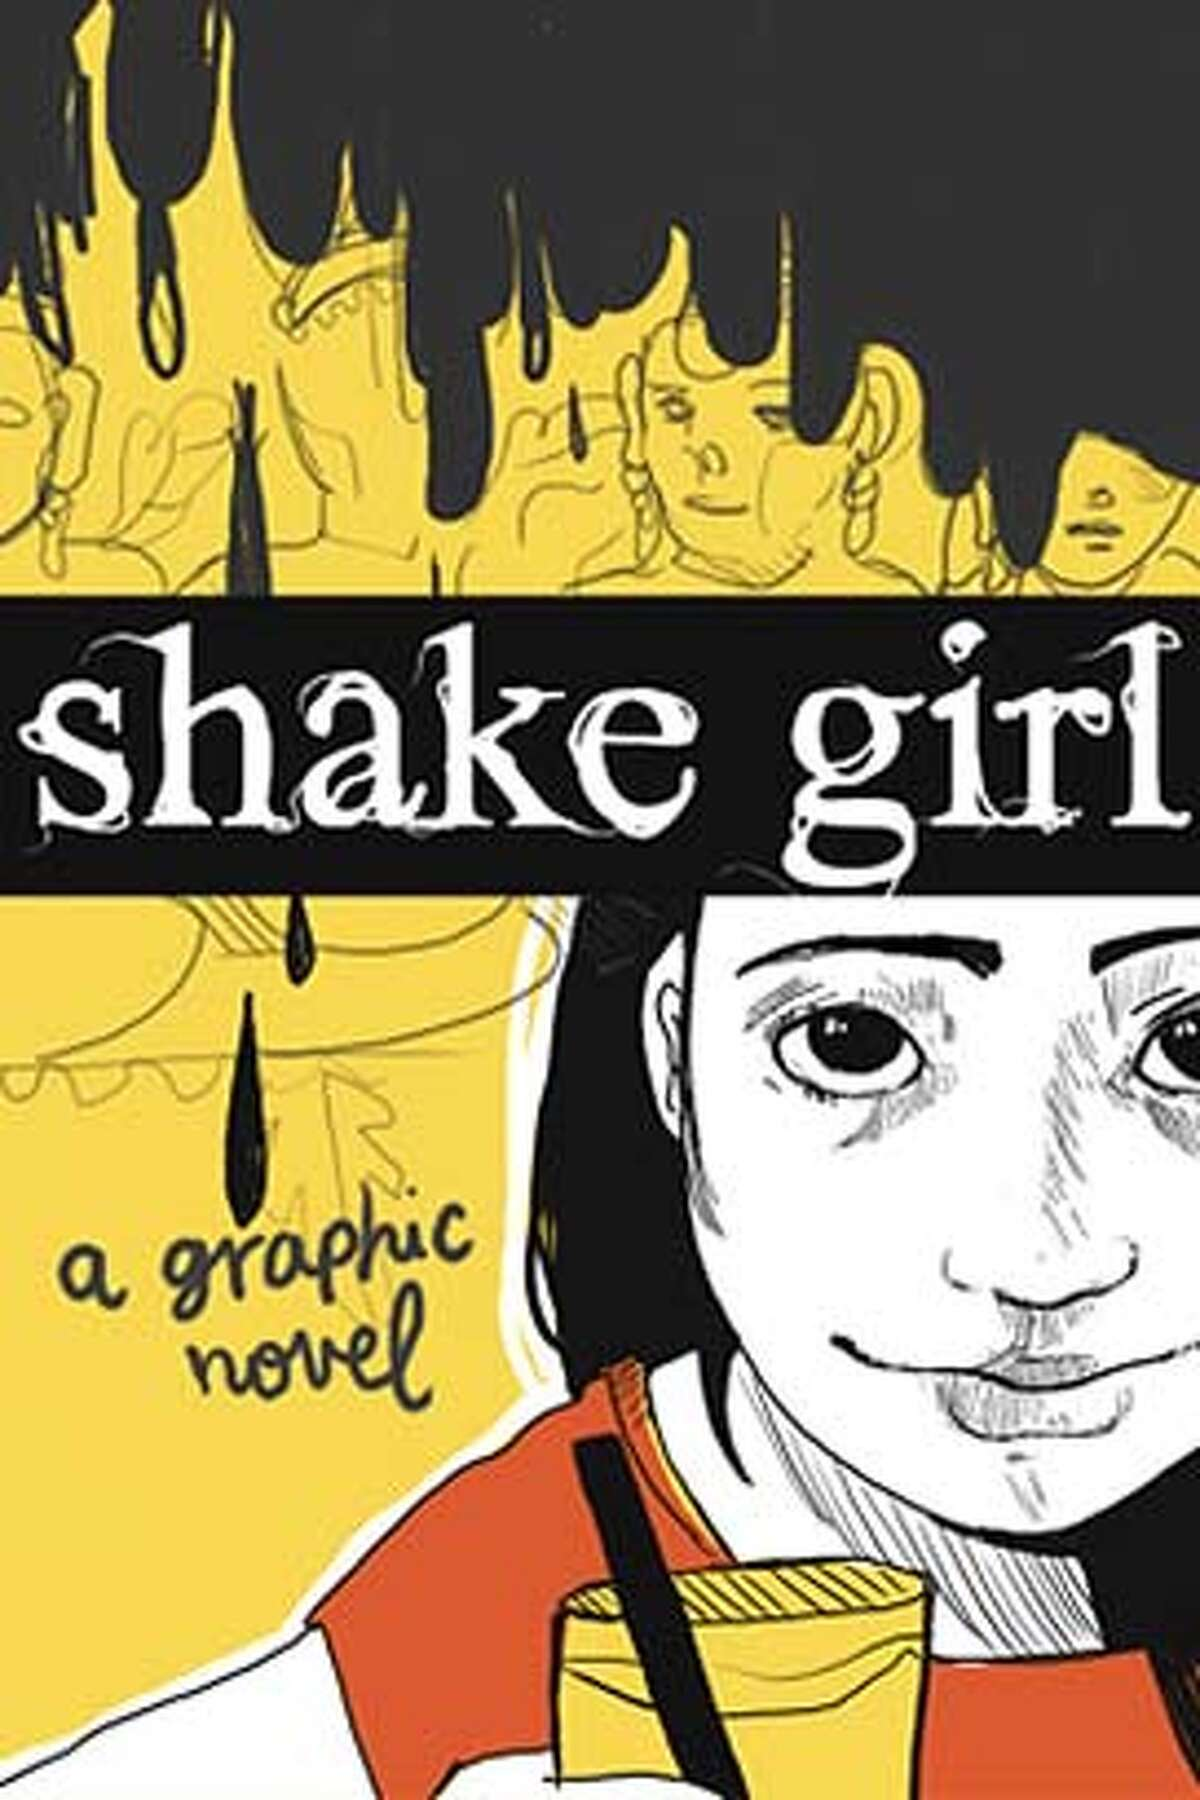 """Cover for graphic novel """"Shake Girl,"""" created by collaborative artists at the Stanford Graphic Novel Project 2008. Credit: Jennifer Bernal / Stanford Graphic Novel Project"""